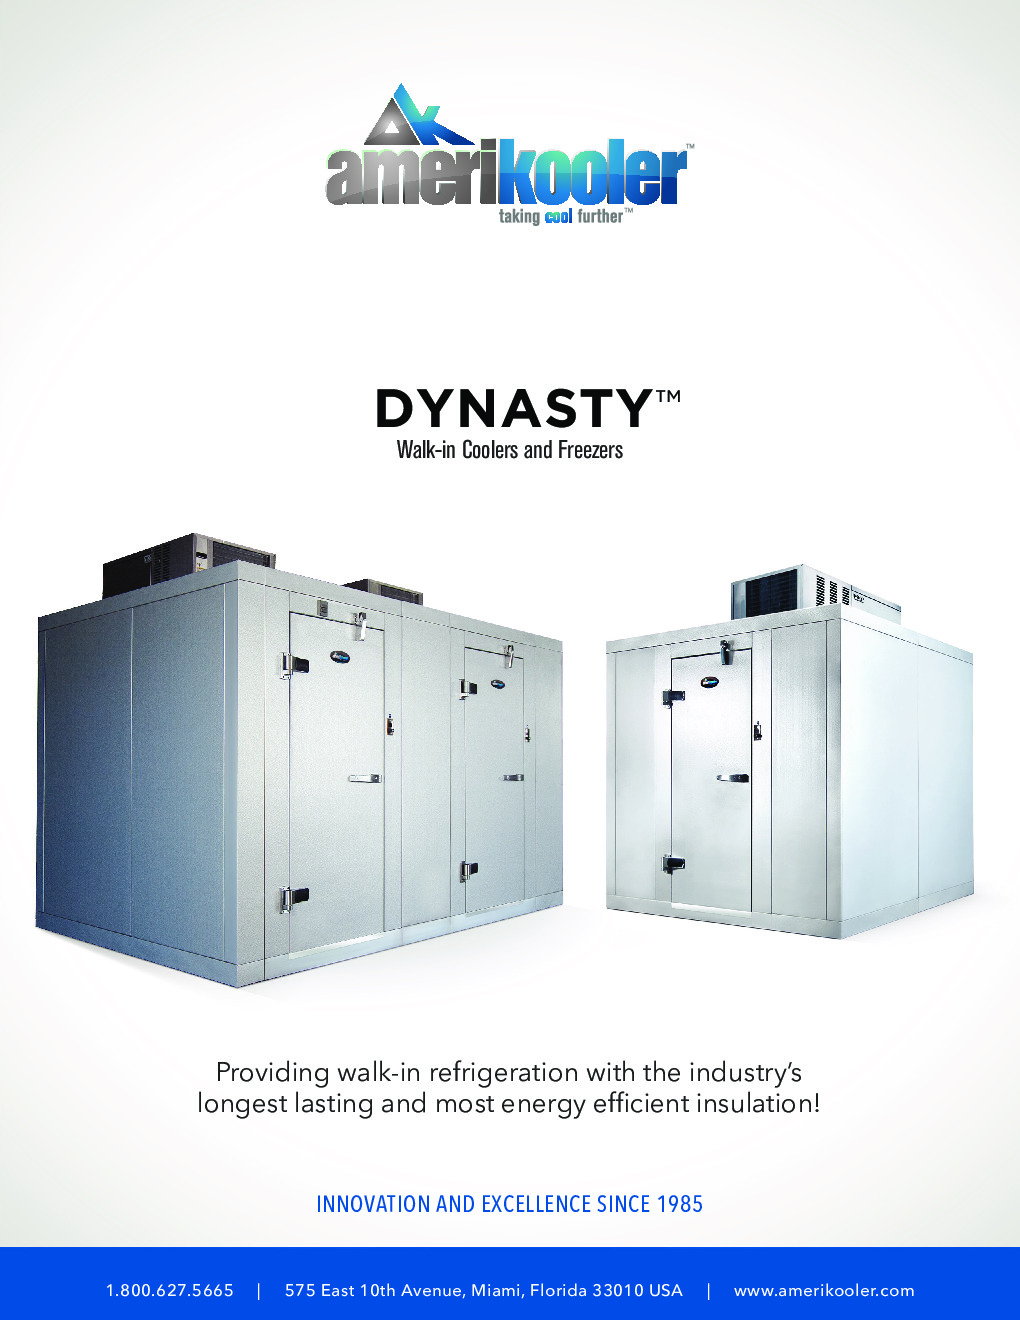 AmeriKooler DW081677N-7/9-RM 8' X 16' Walk-In Cooler, 9' L Cooler without Floor and 7' L Freezer, Remote